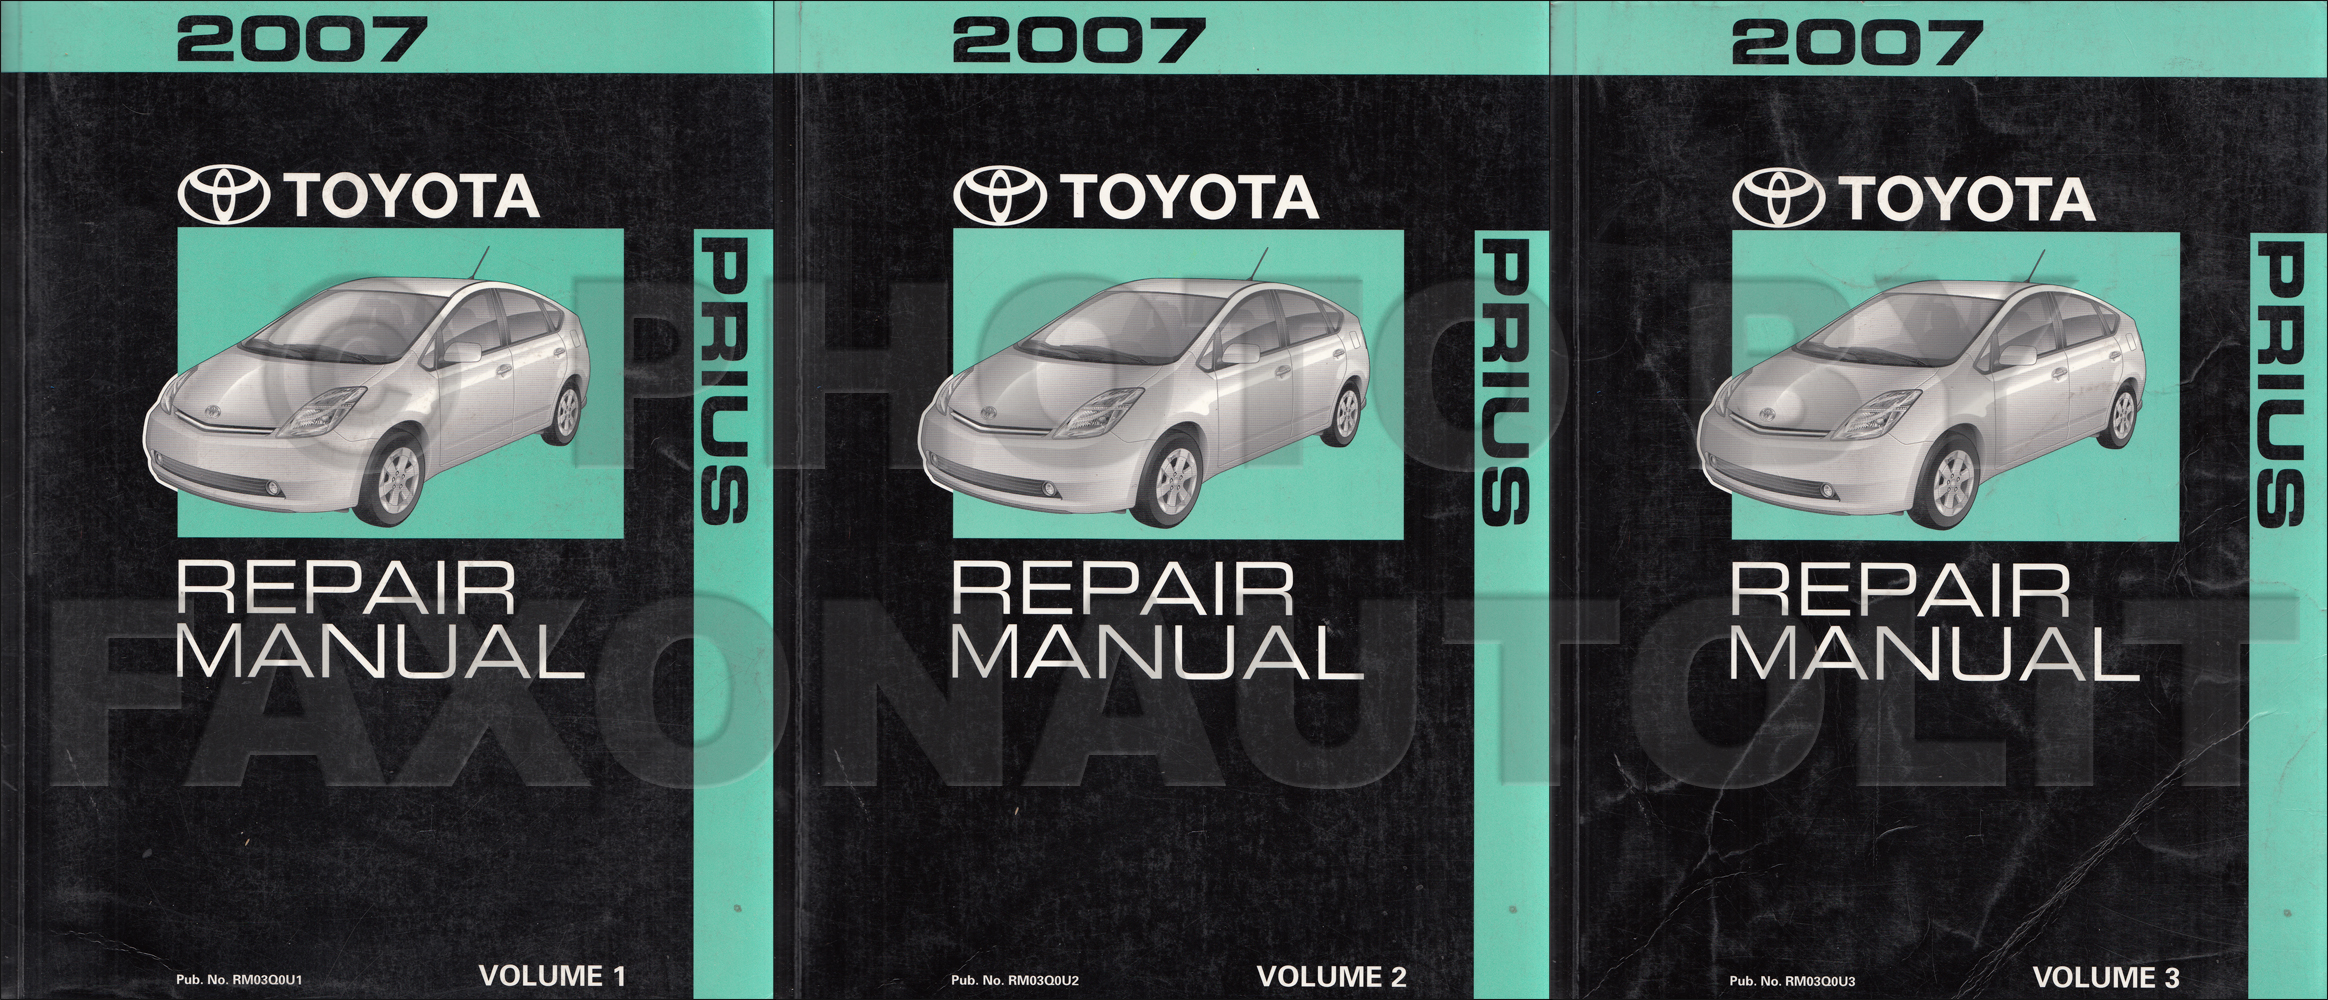 2004 toyota prius manual daily instruction manual guides u2022 rh testingwordpress co owners manual prius 2011 owners manual prius 2013